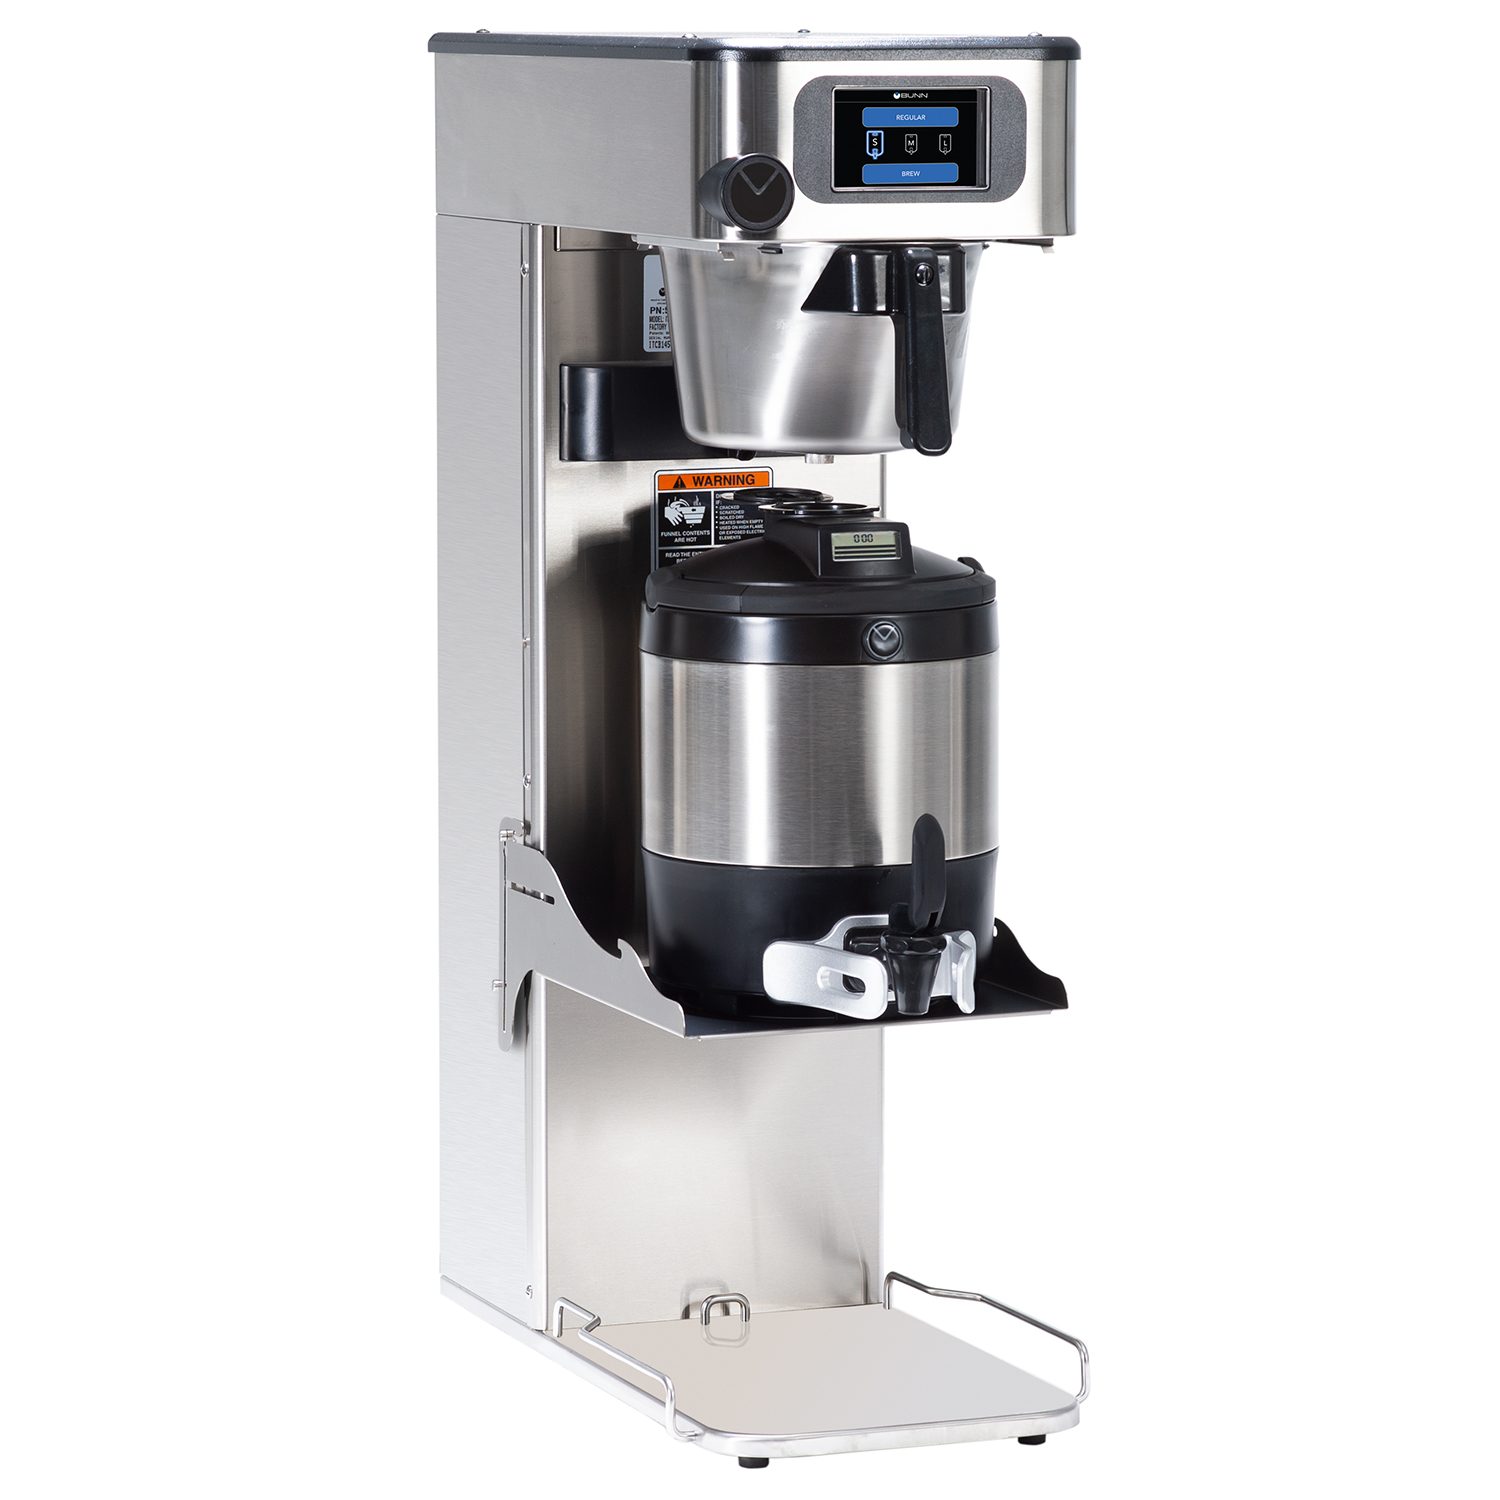 BUNN 52500.0100 coffee tea brewer